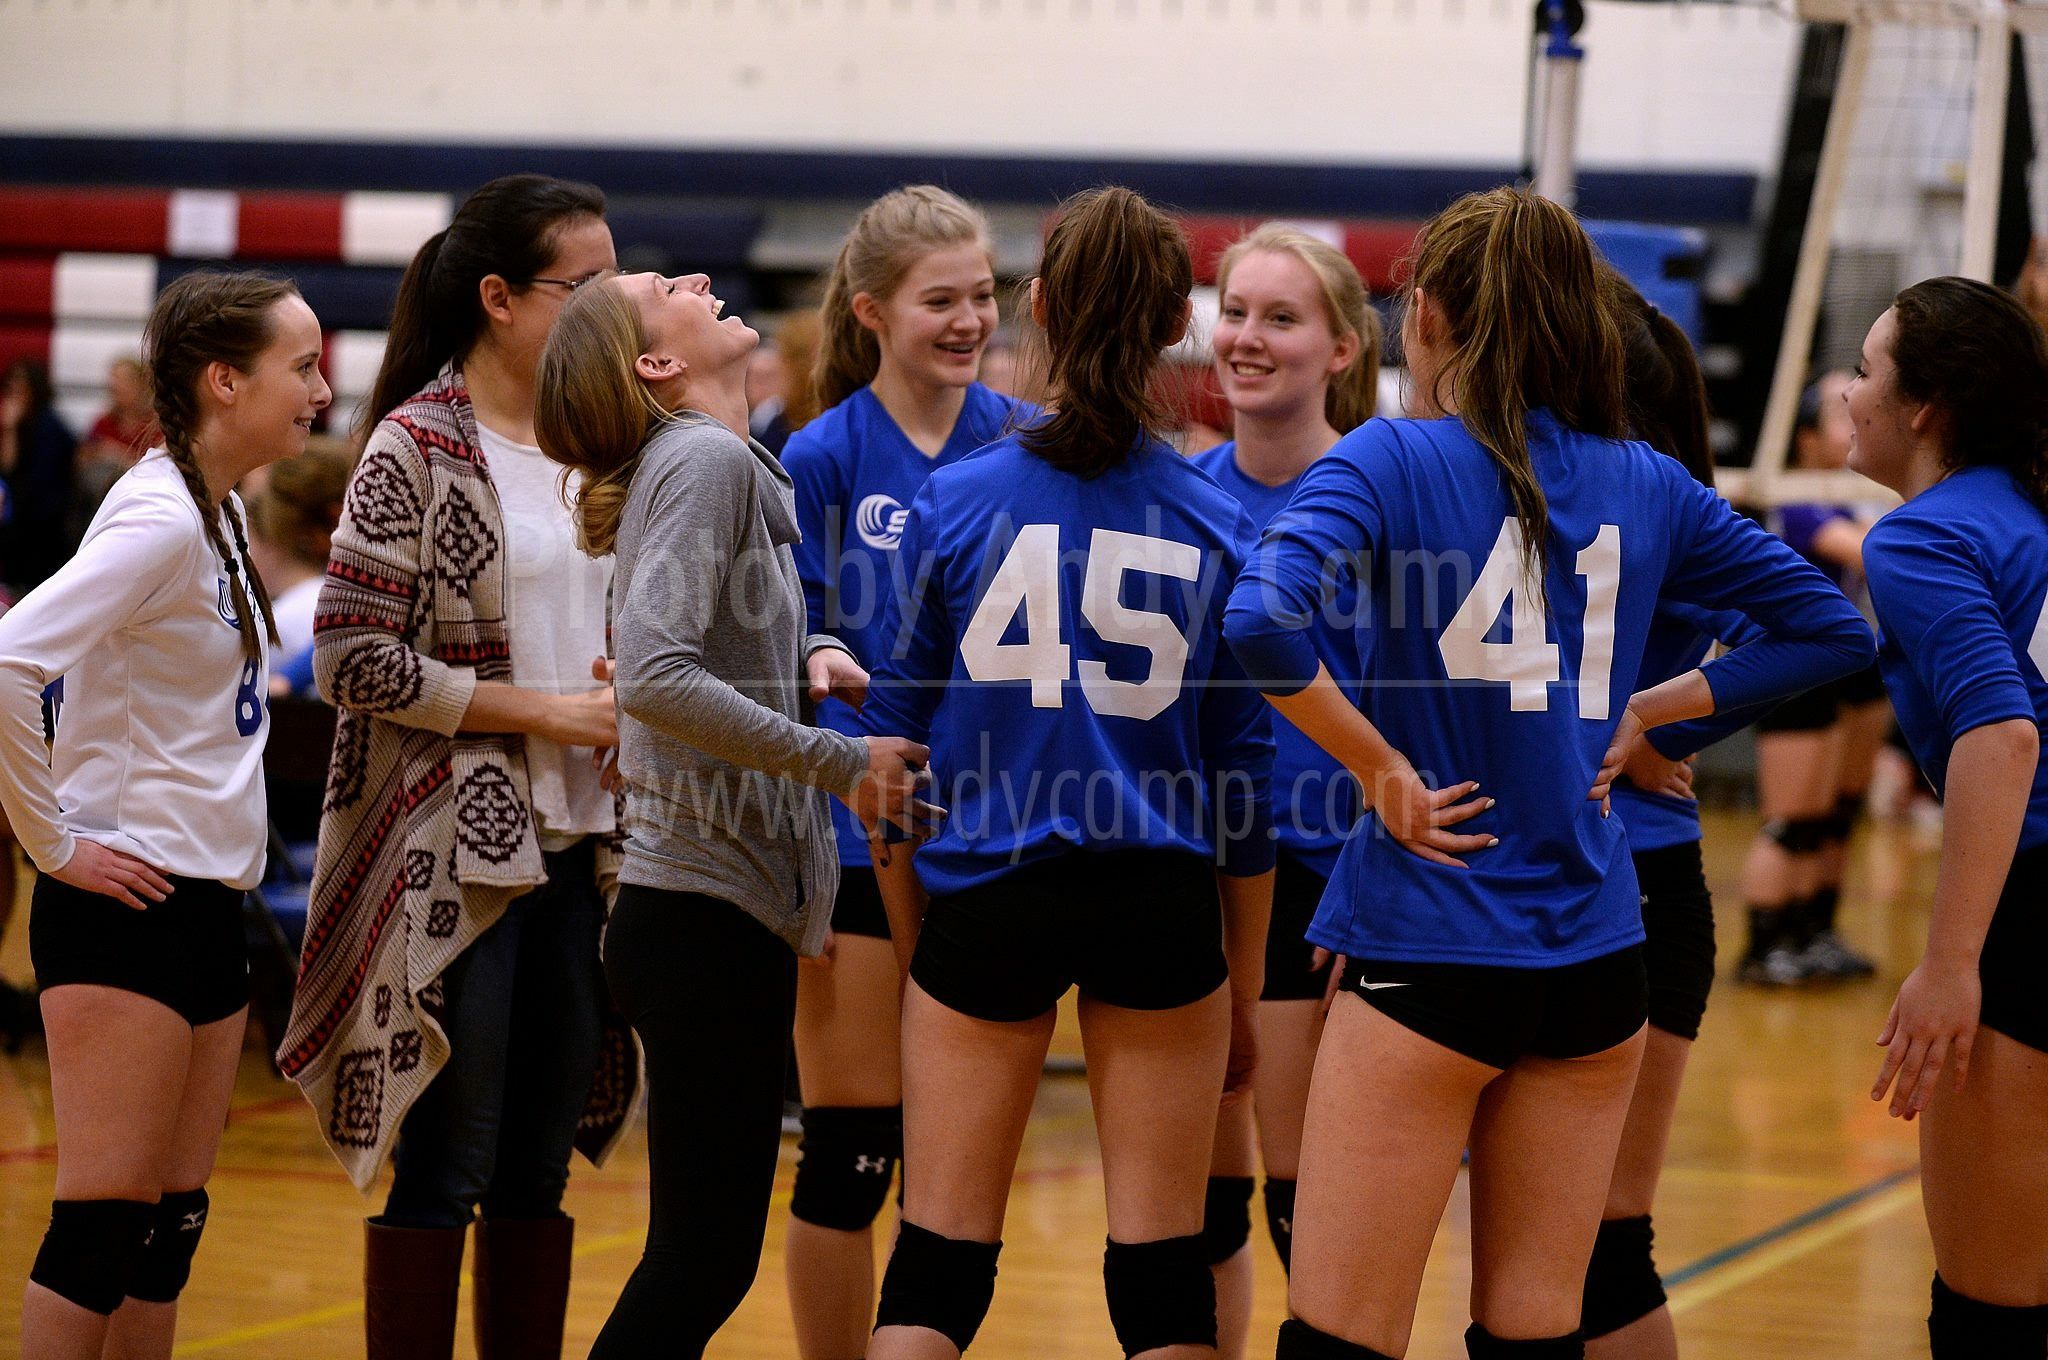 Coach Laughing At Our Jokes During A Time Out Me And My 16u Tornadoes Team At The Winter Volleyfest Tournament 1 29 17 Volleyball Team School Team Tornadoes